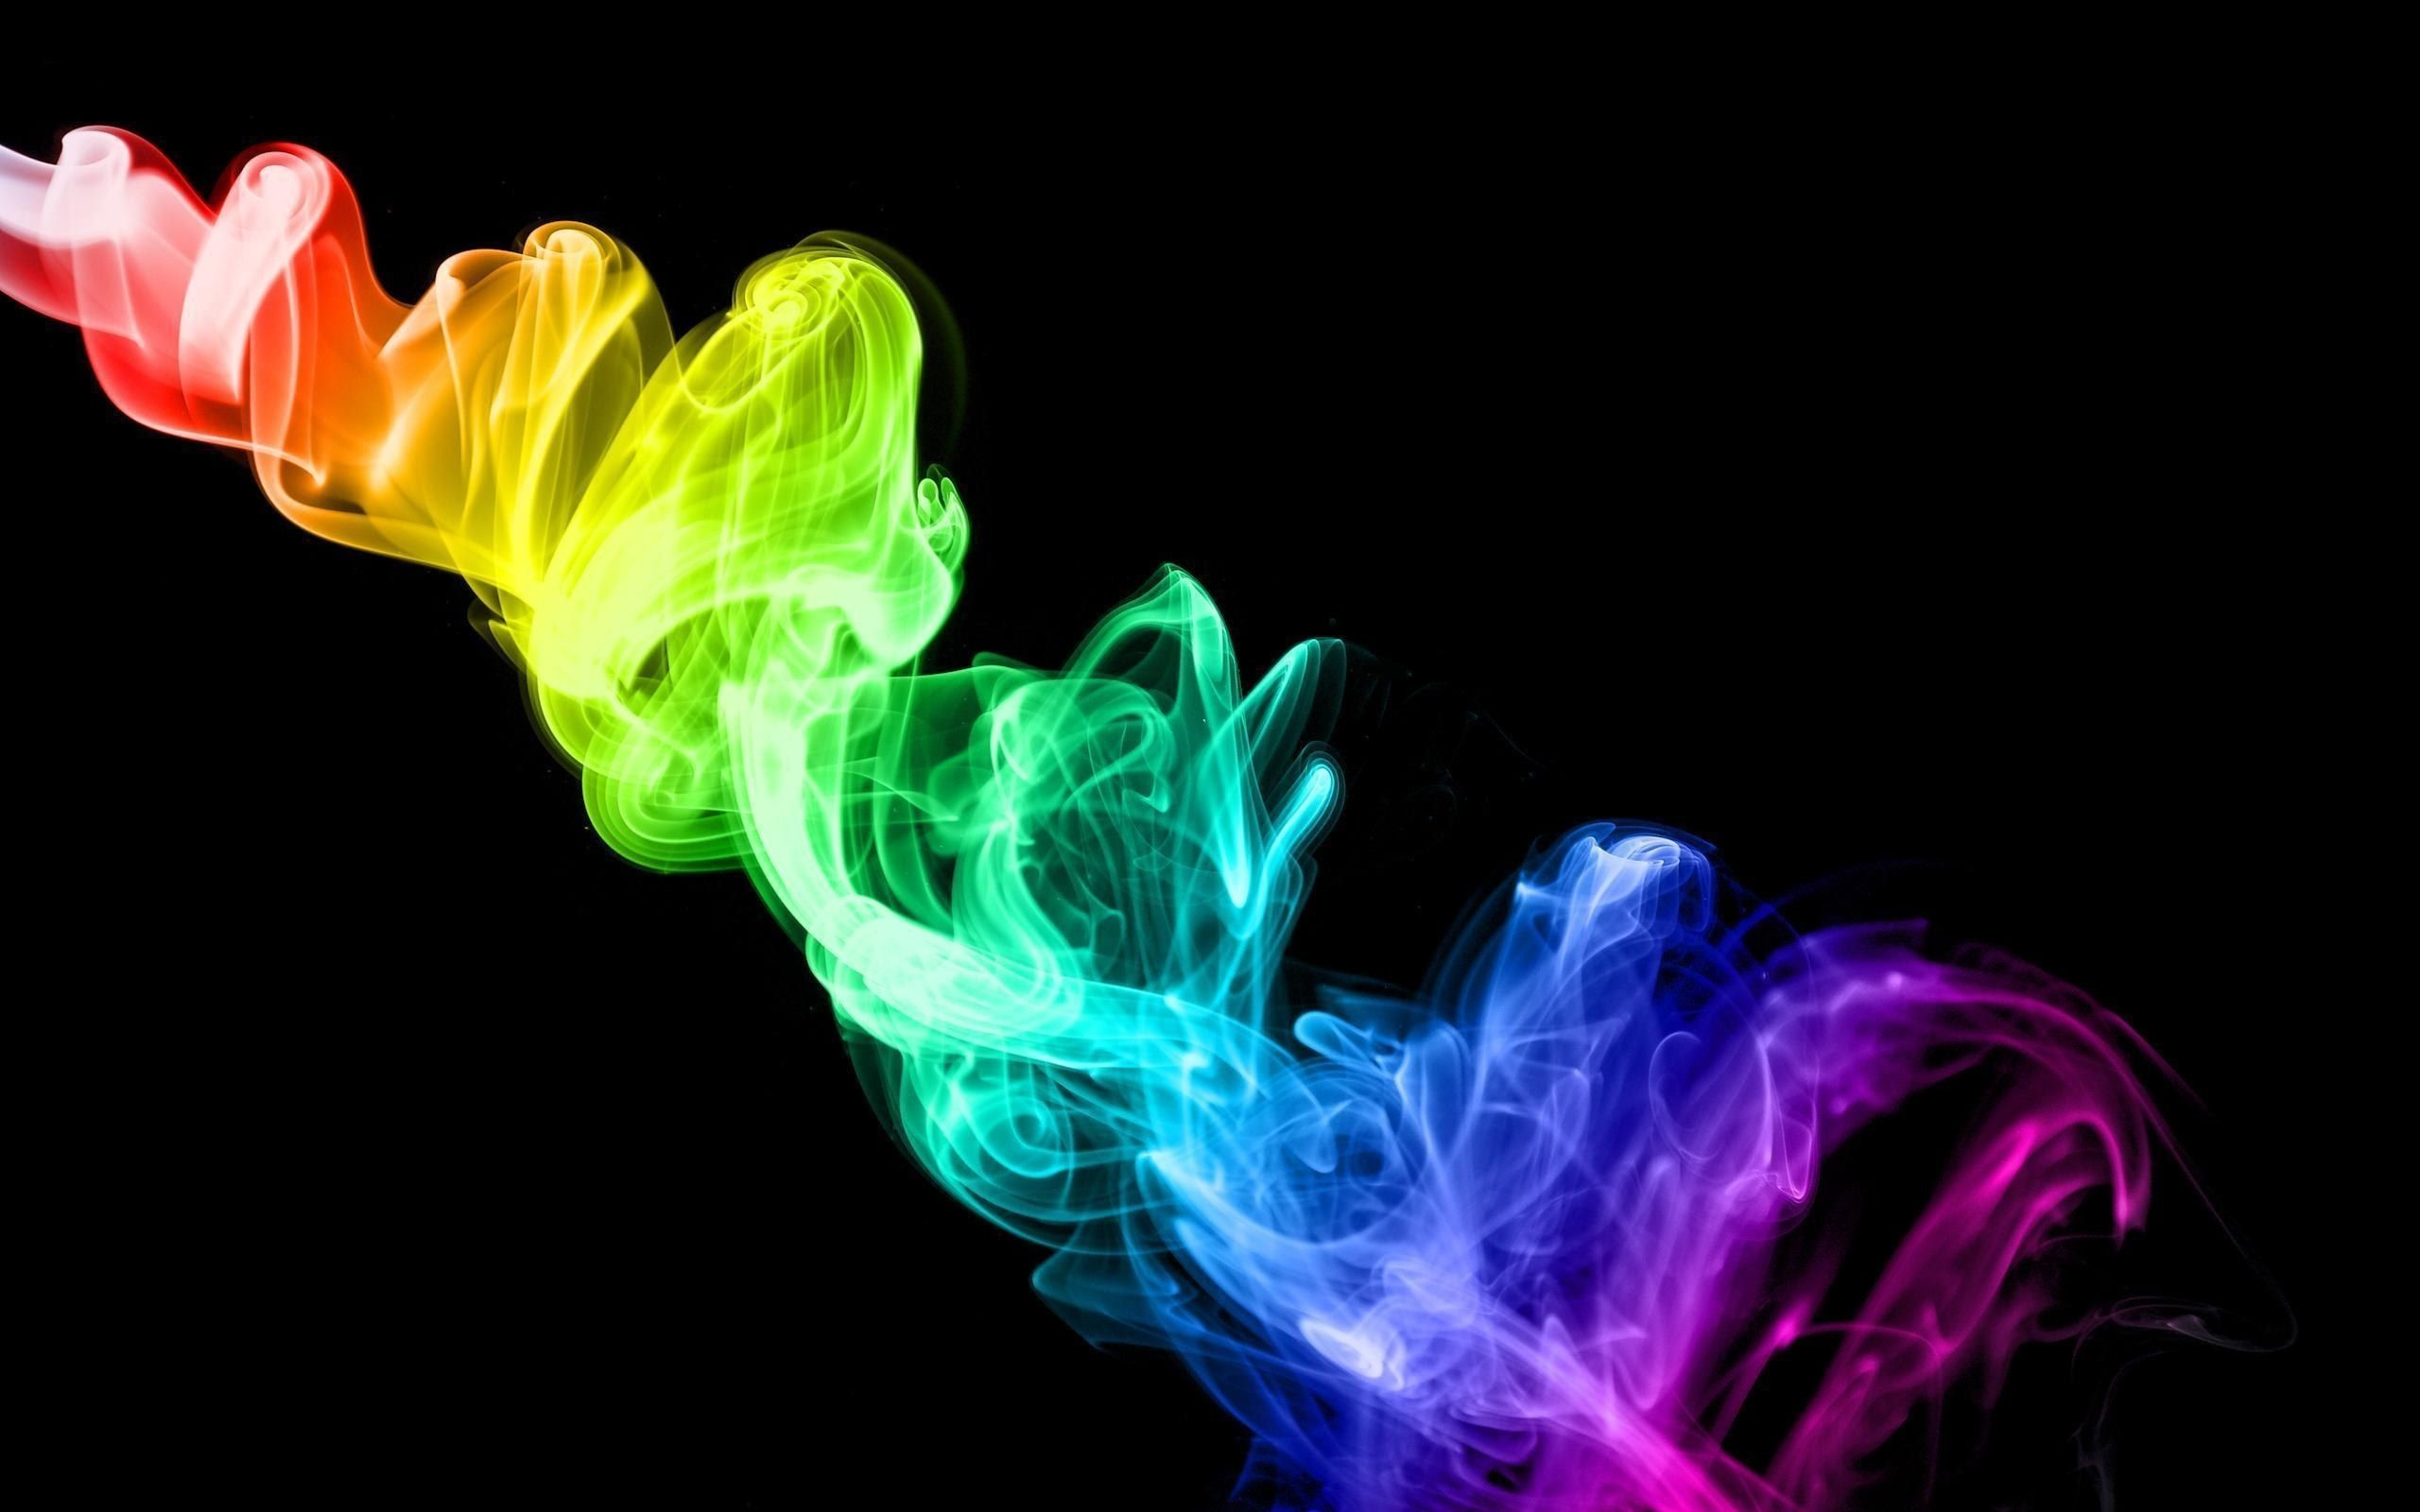 Cool Smoke Wallpapers 71 Images